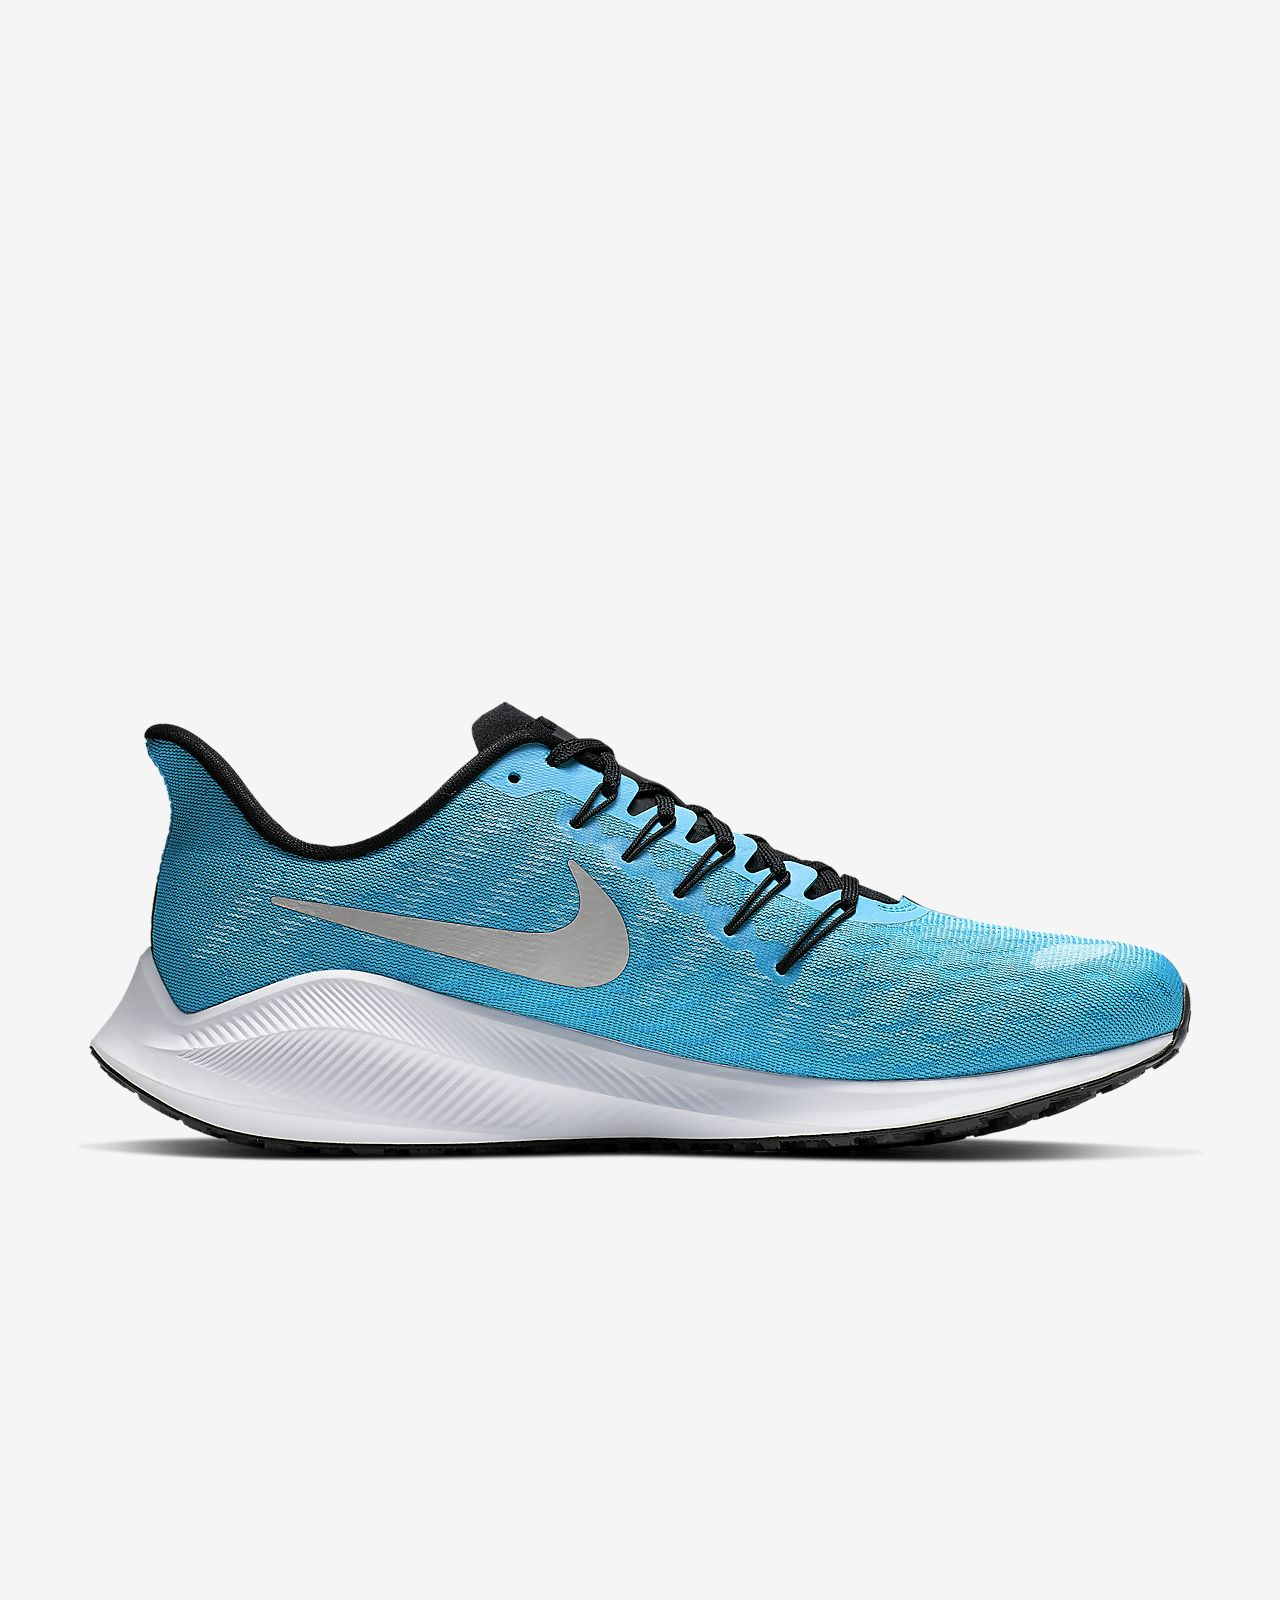 c13f6d3e39a3 Nike Air Zoom Vomero 14 Men s Running Shoe. Nike.com